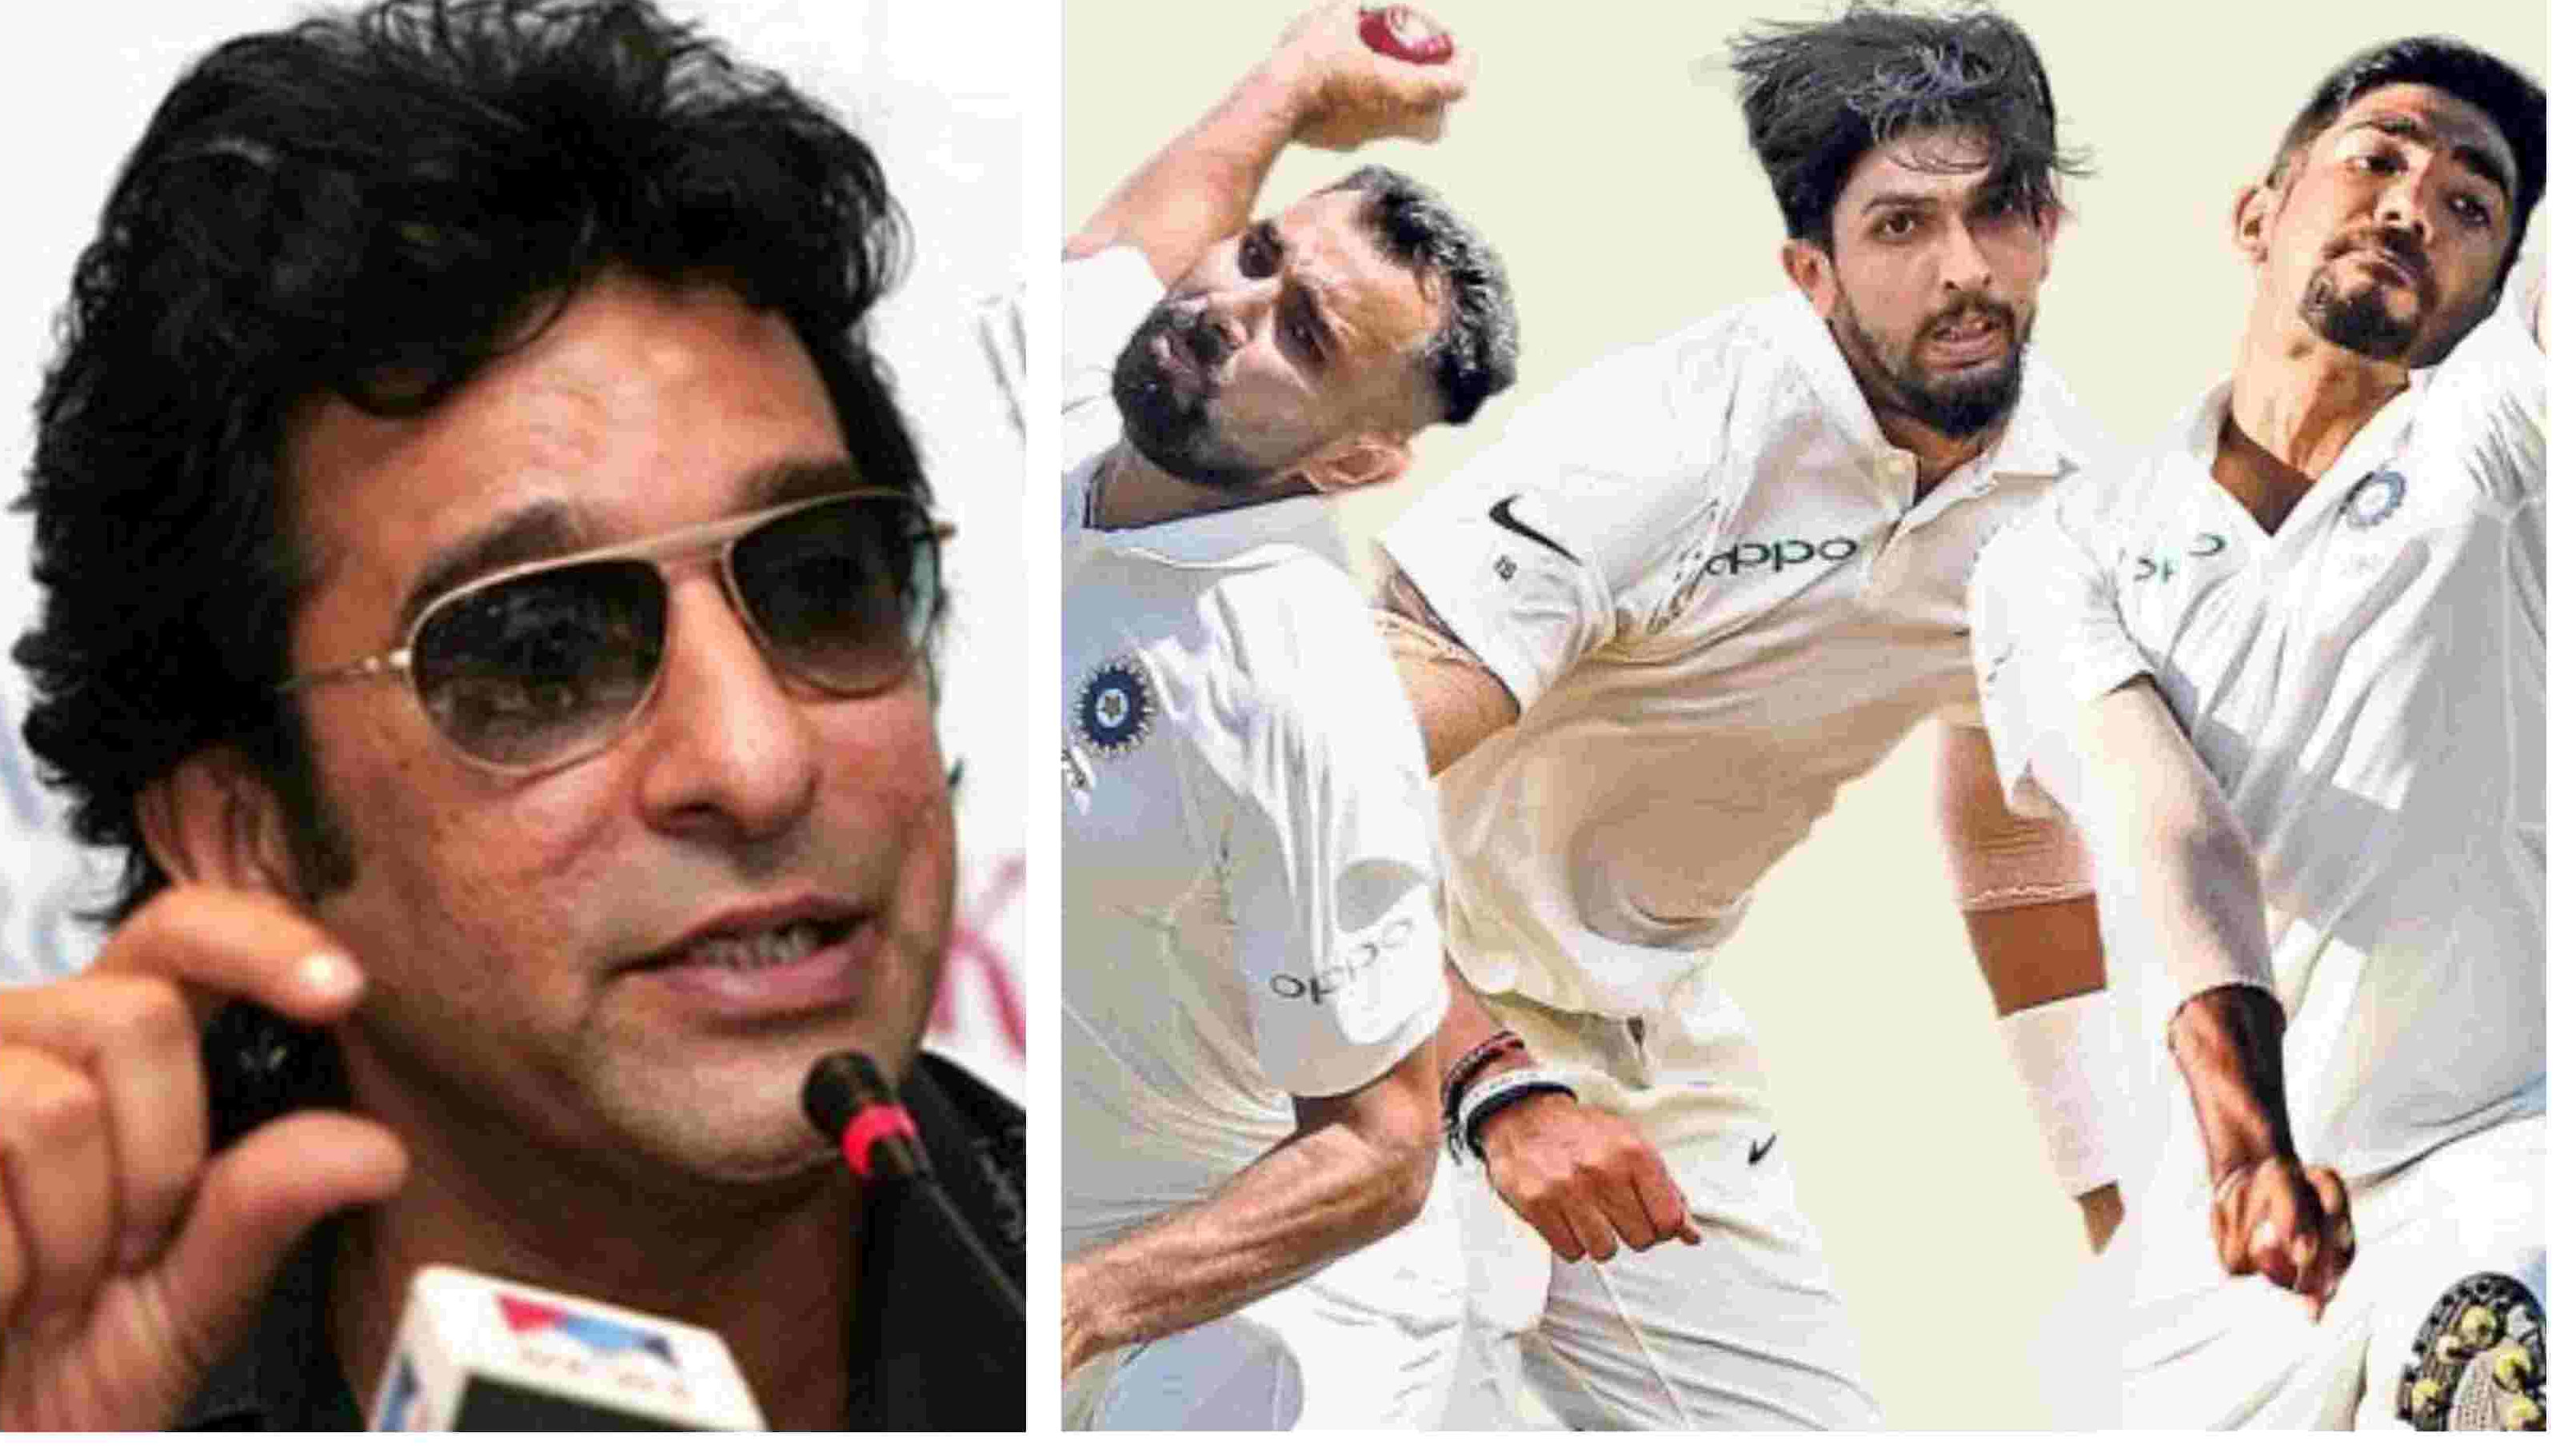 AUS v IND 2018-19: Indian bowlers will have it tough in Australia, reckons Wasim Akram